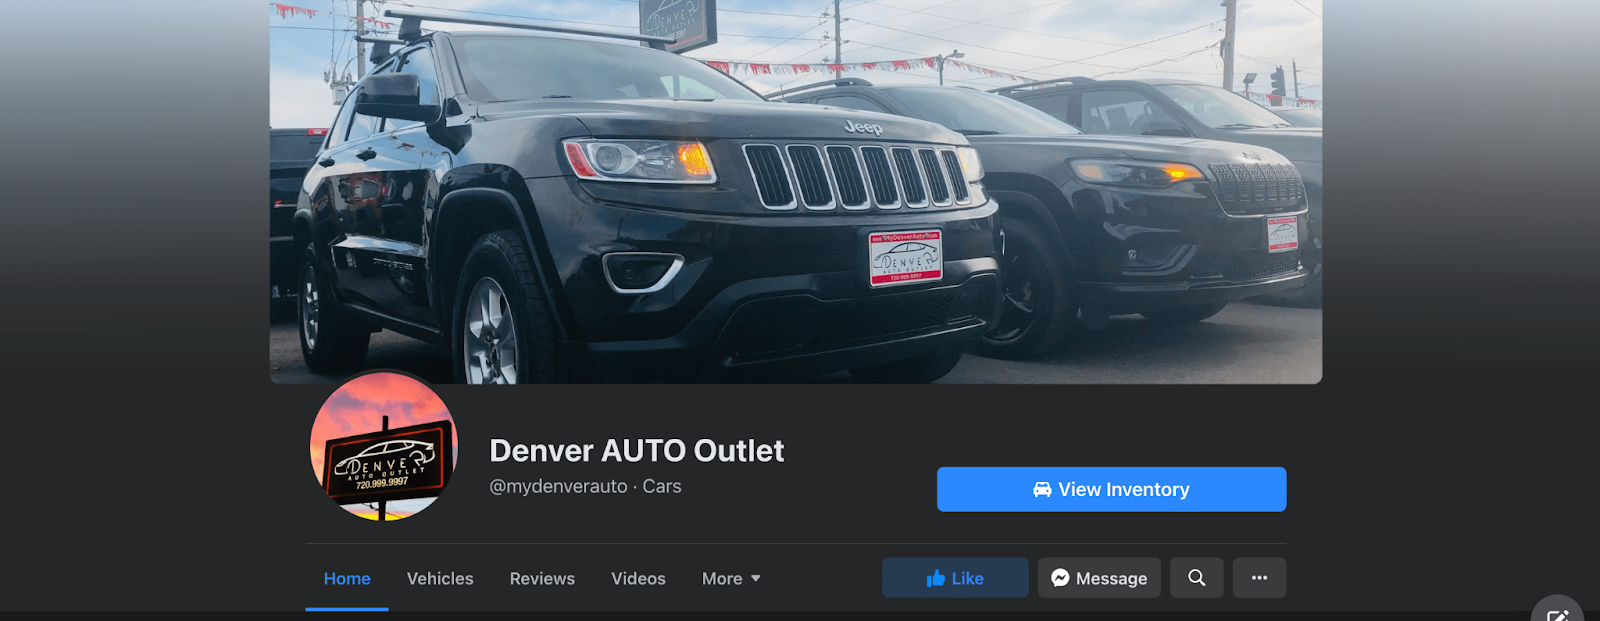 used-cars-Facebook-Cosocial